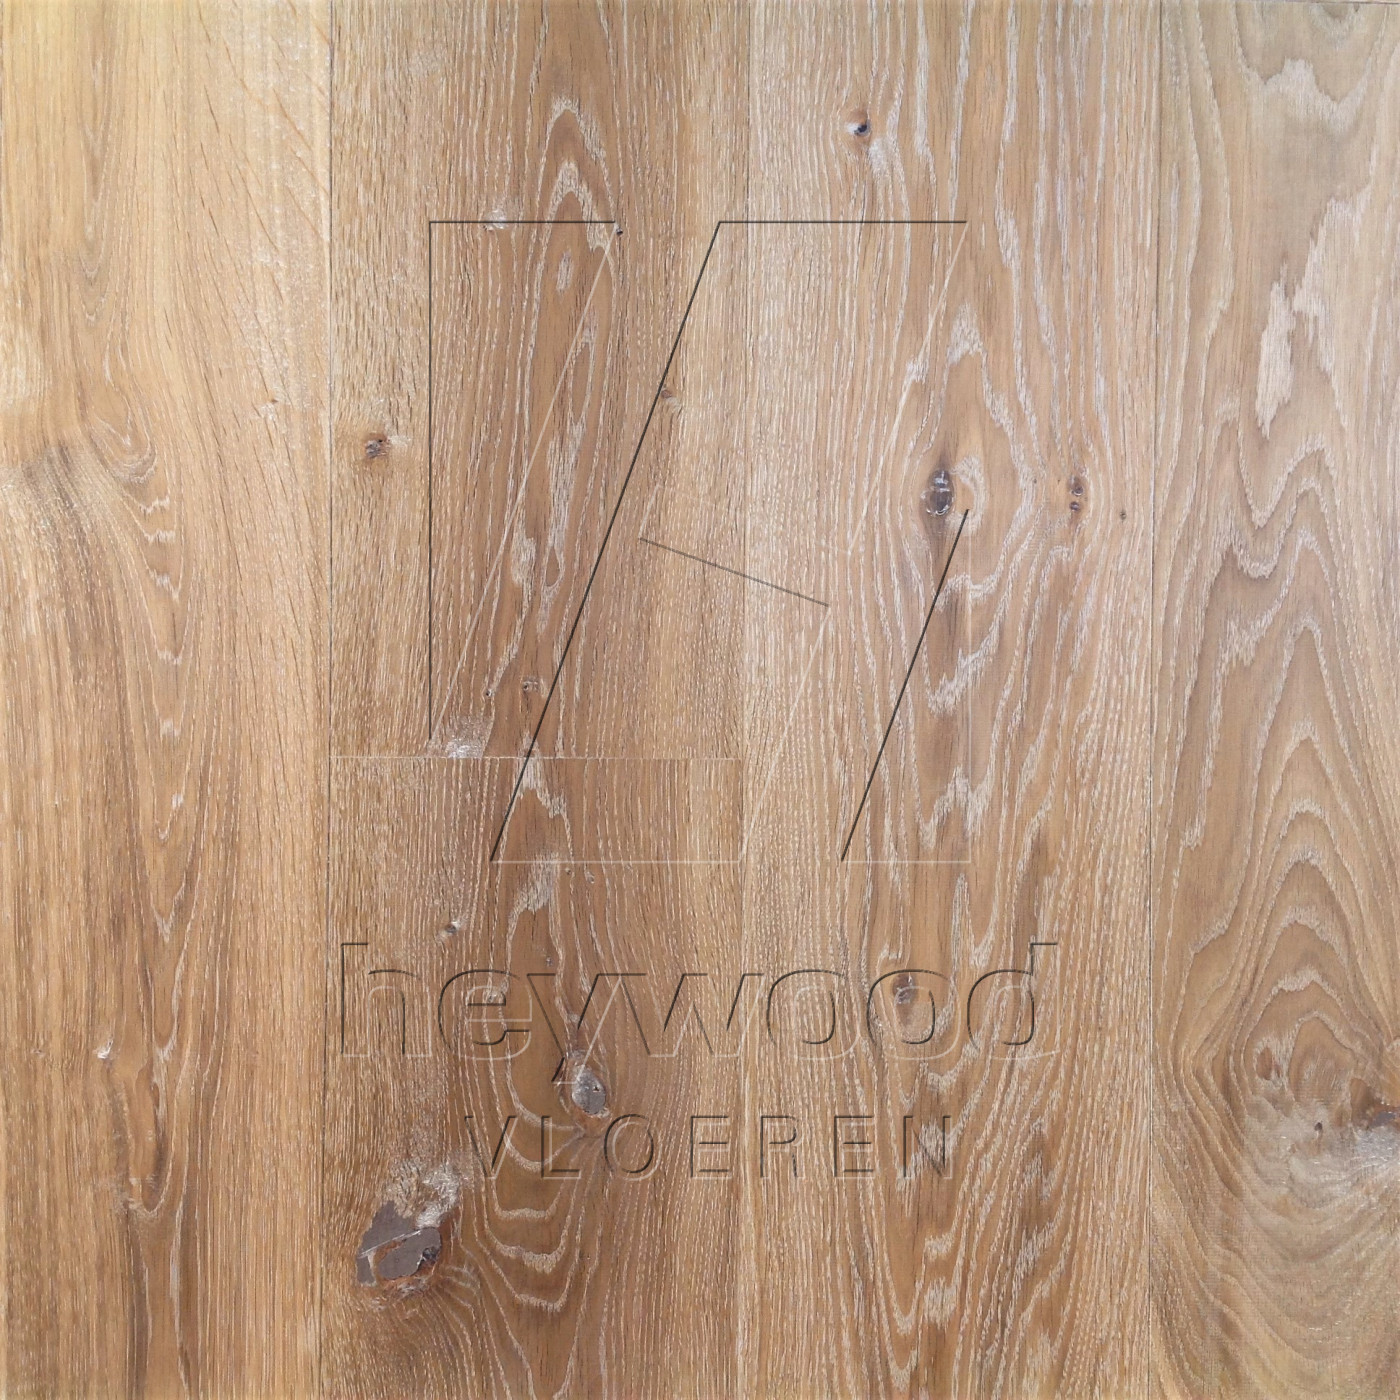 Plank Denver in European Oak Character of Bespoke Wooden Floors